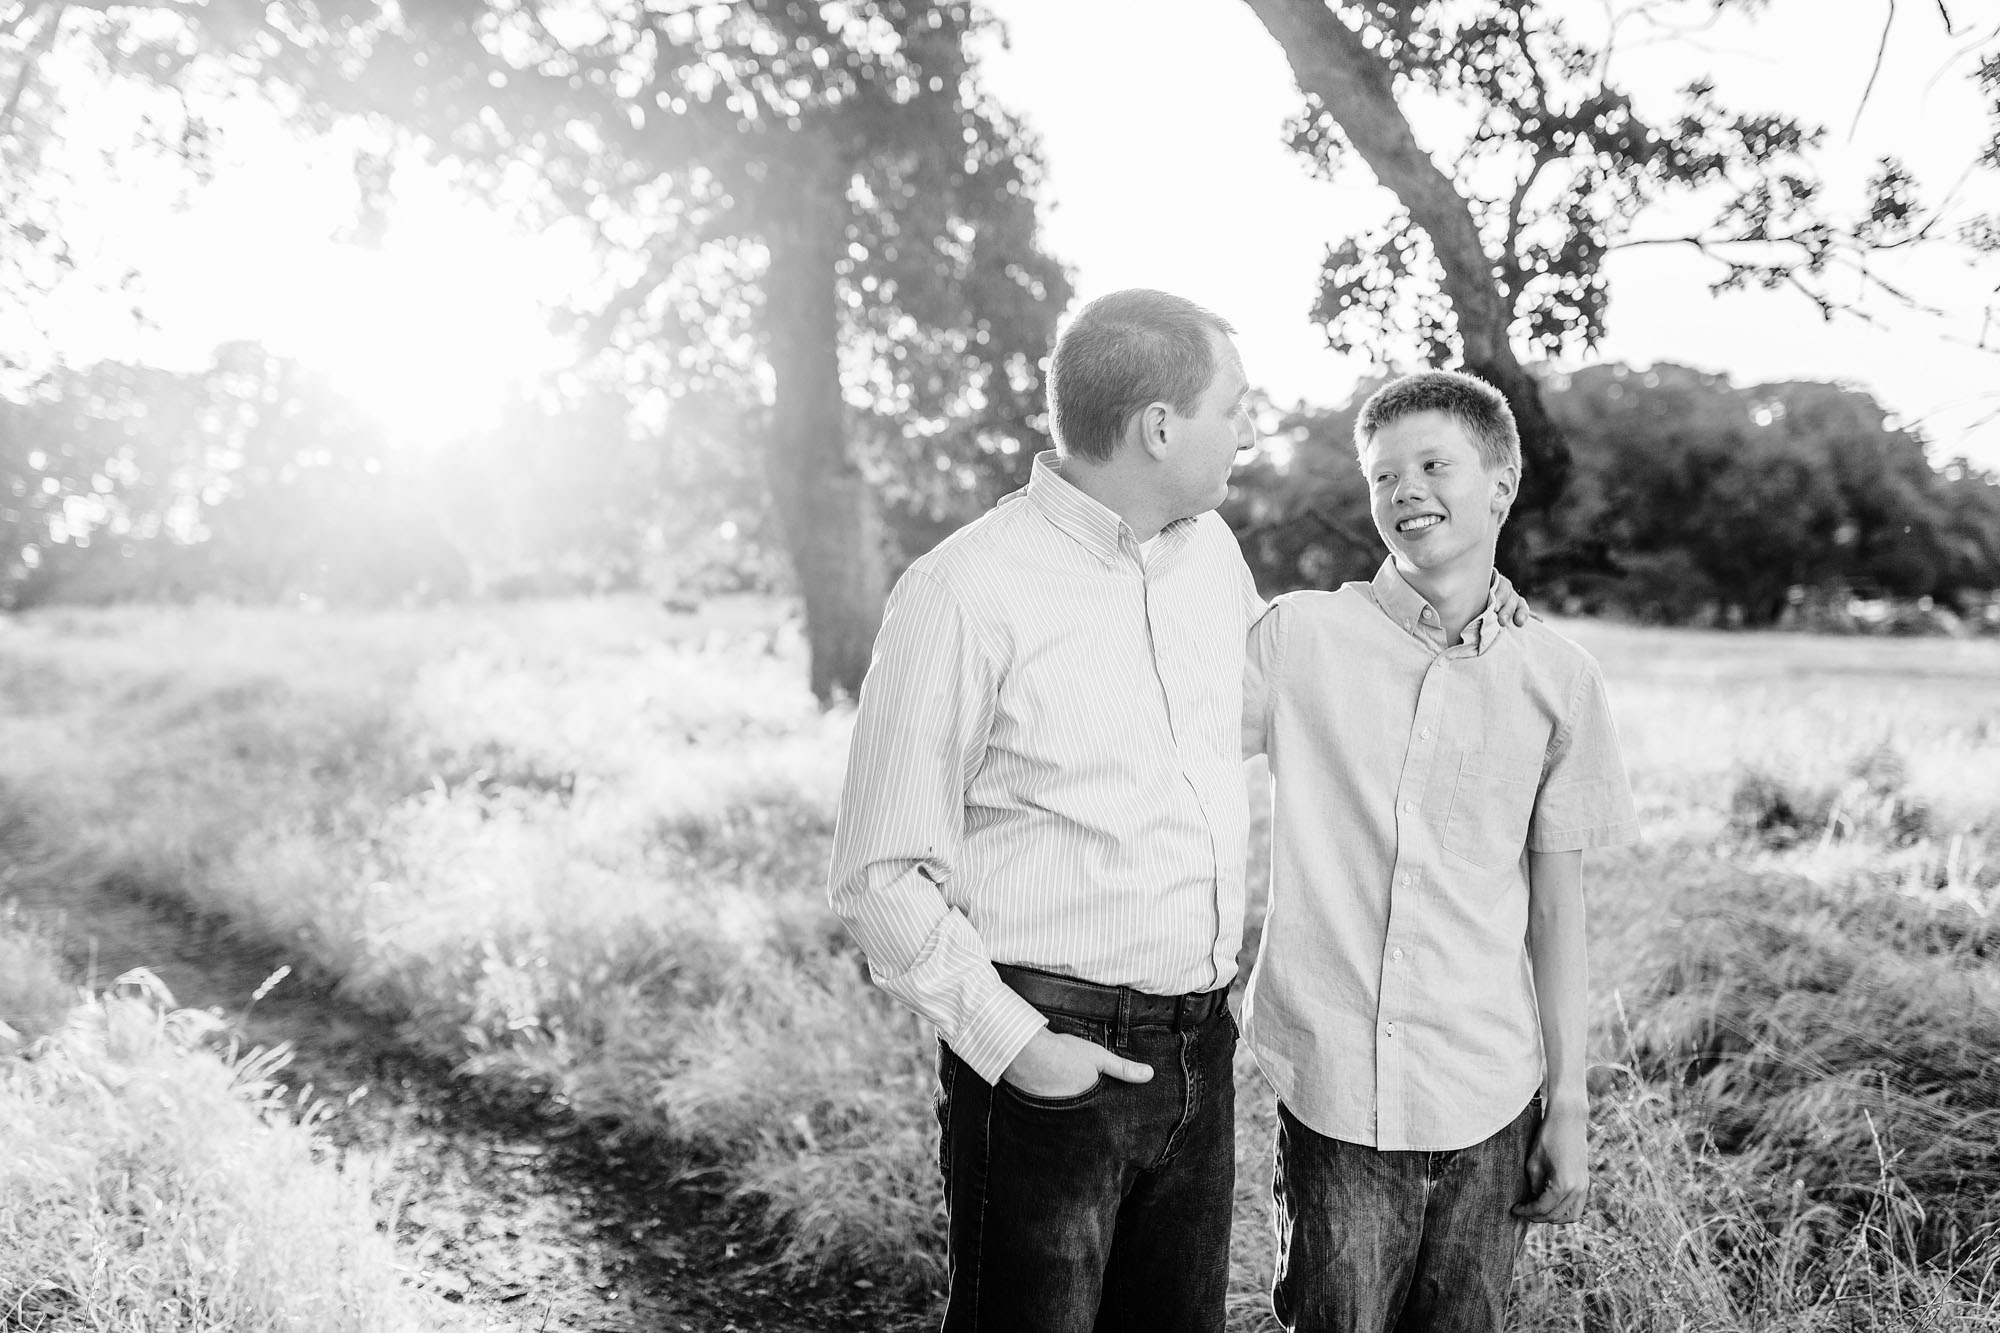 A father and son share a special moment together during family pictures taken by photographer Amy Wright in Roseville, California.